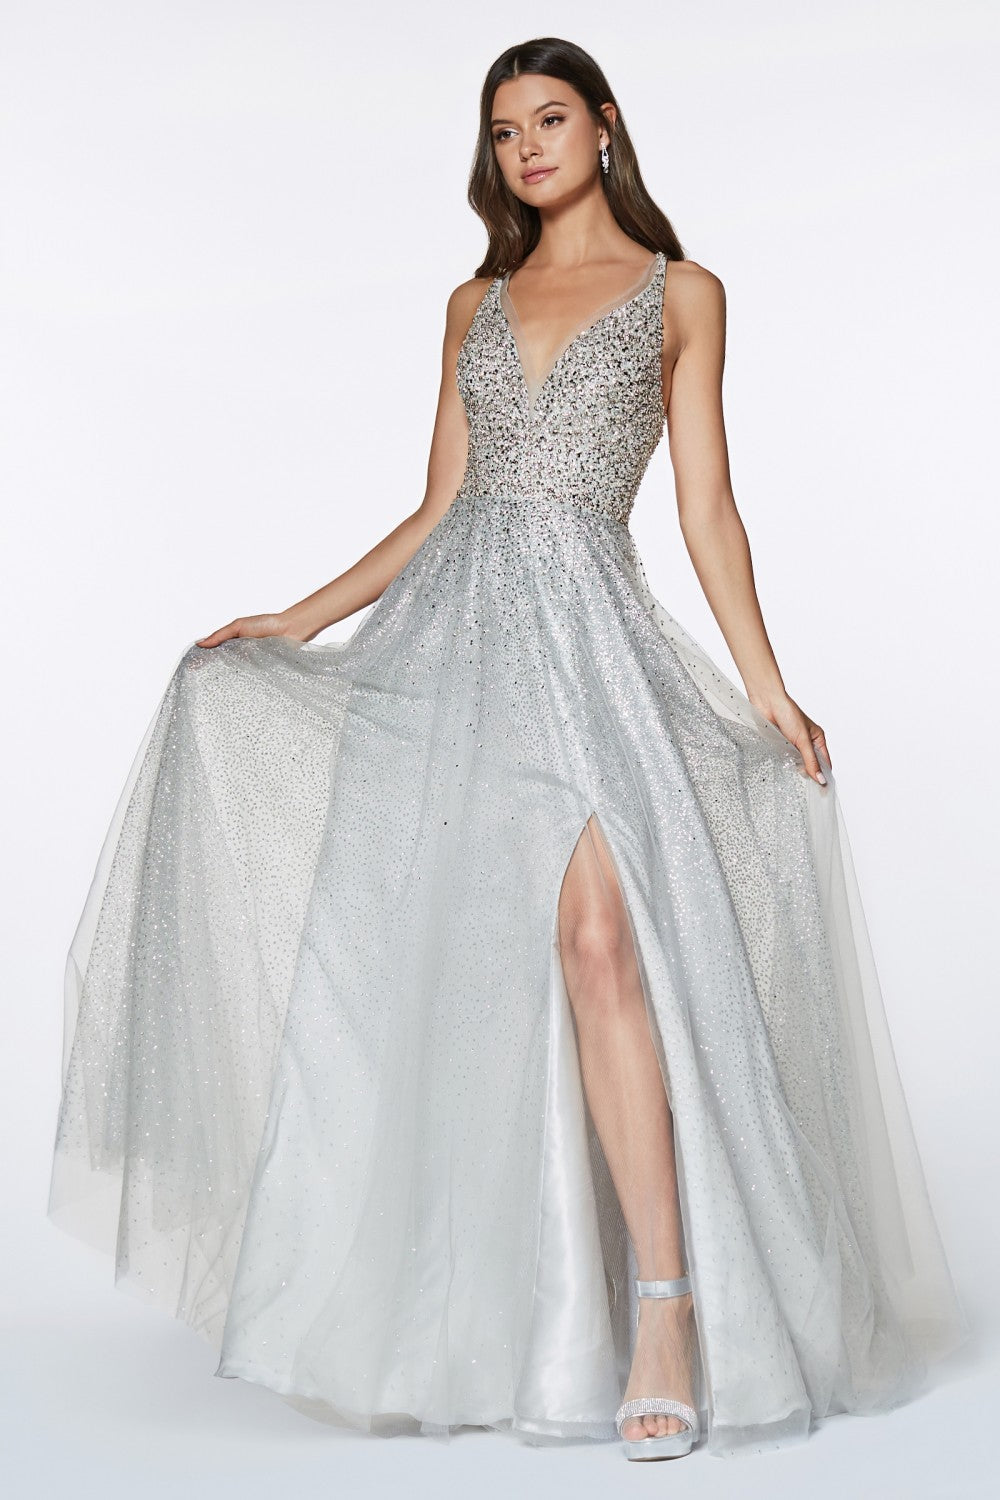 A-Line Tulle Gown With Beaded V-Neckline Bodice And Leg Slit